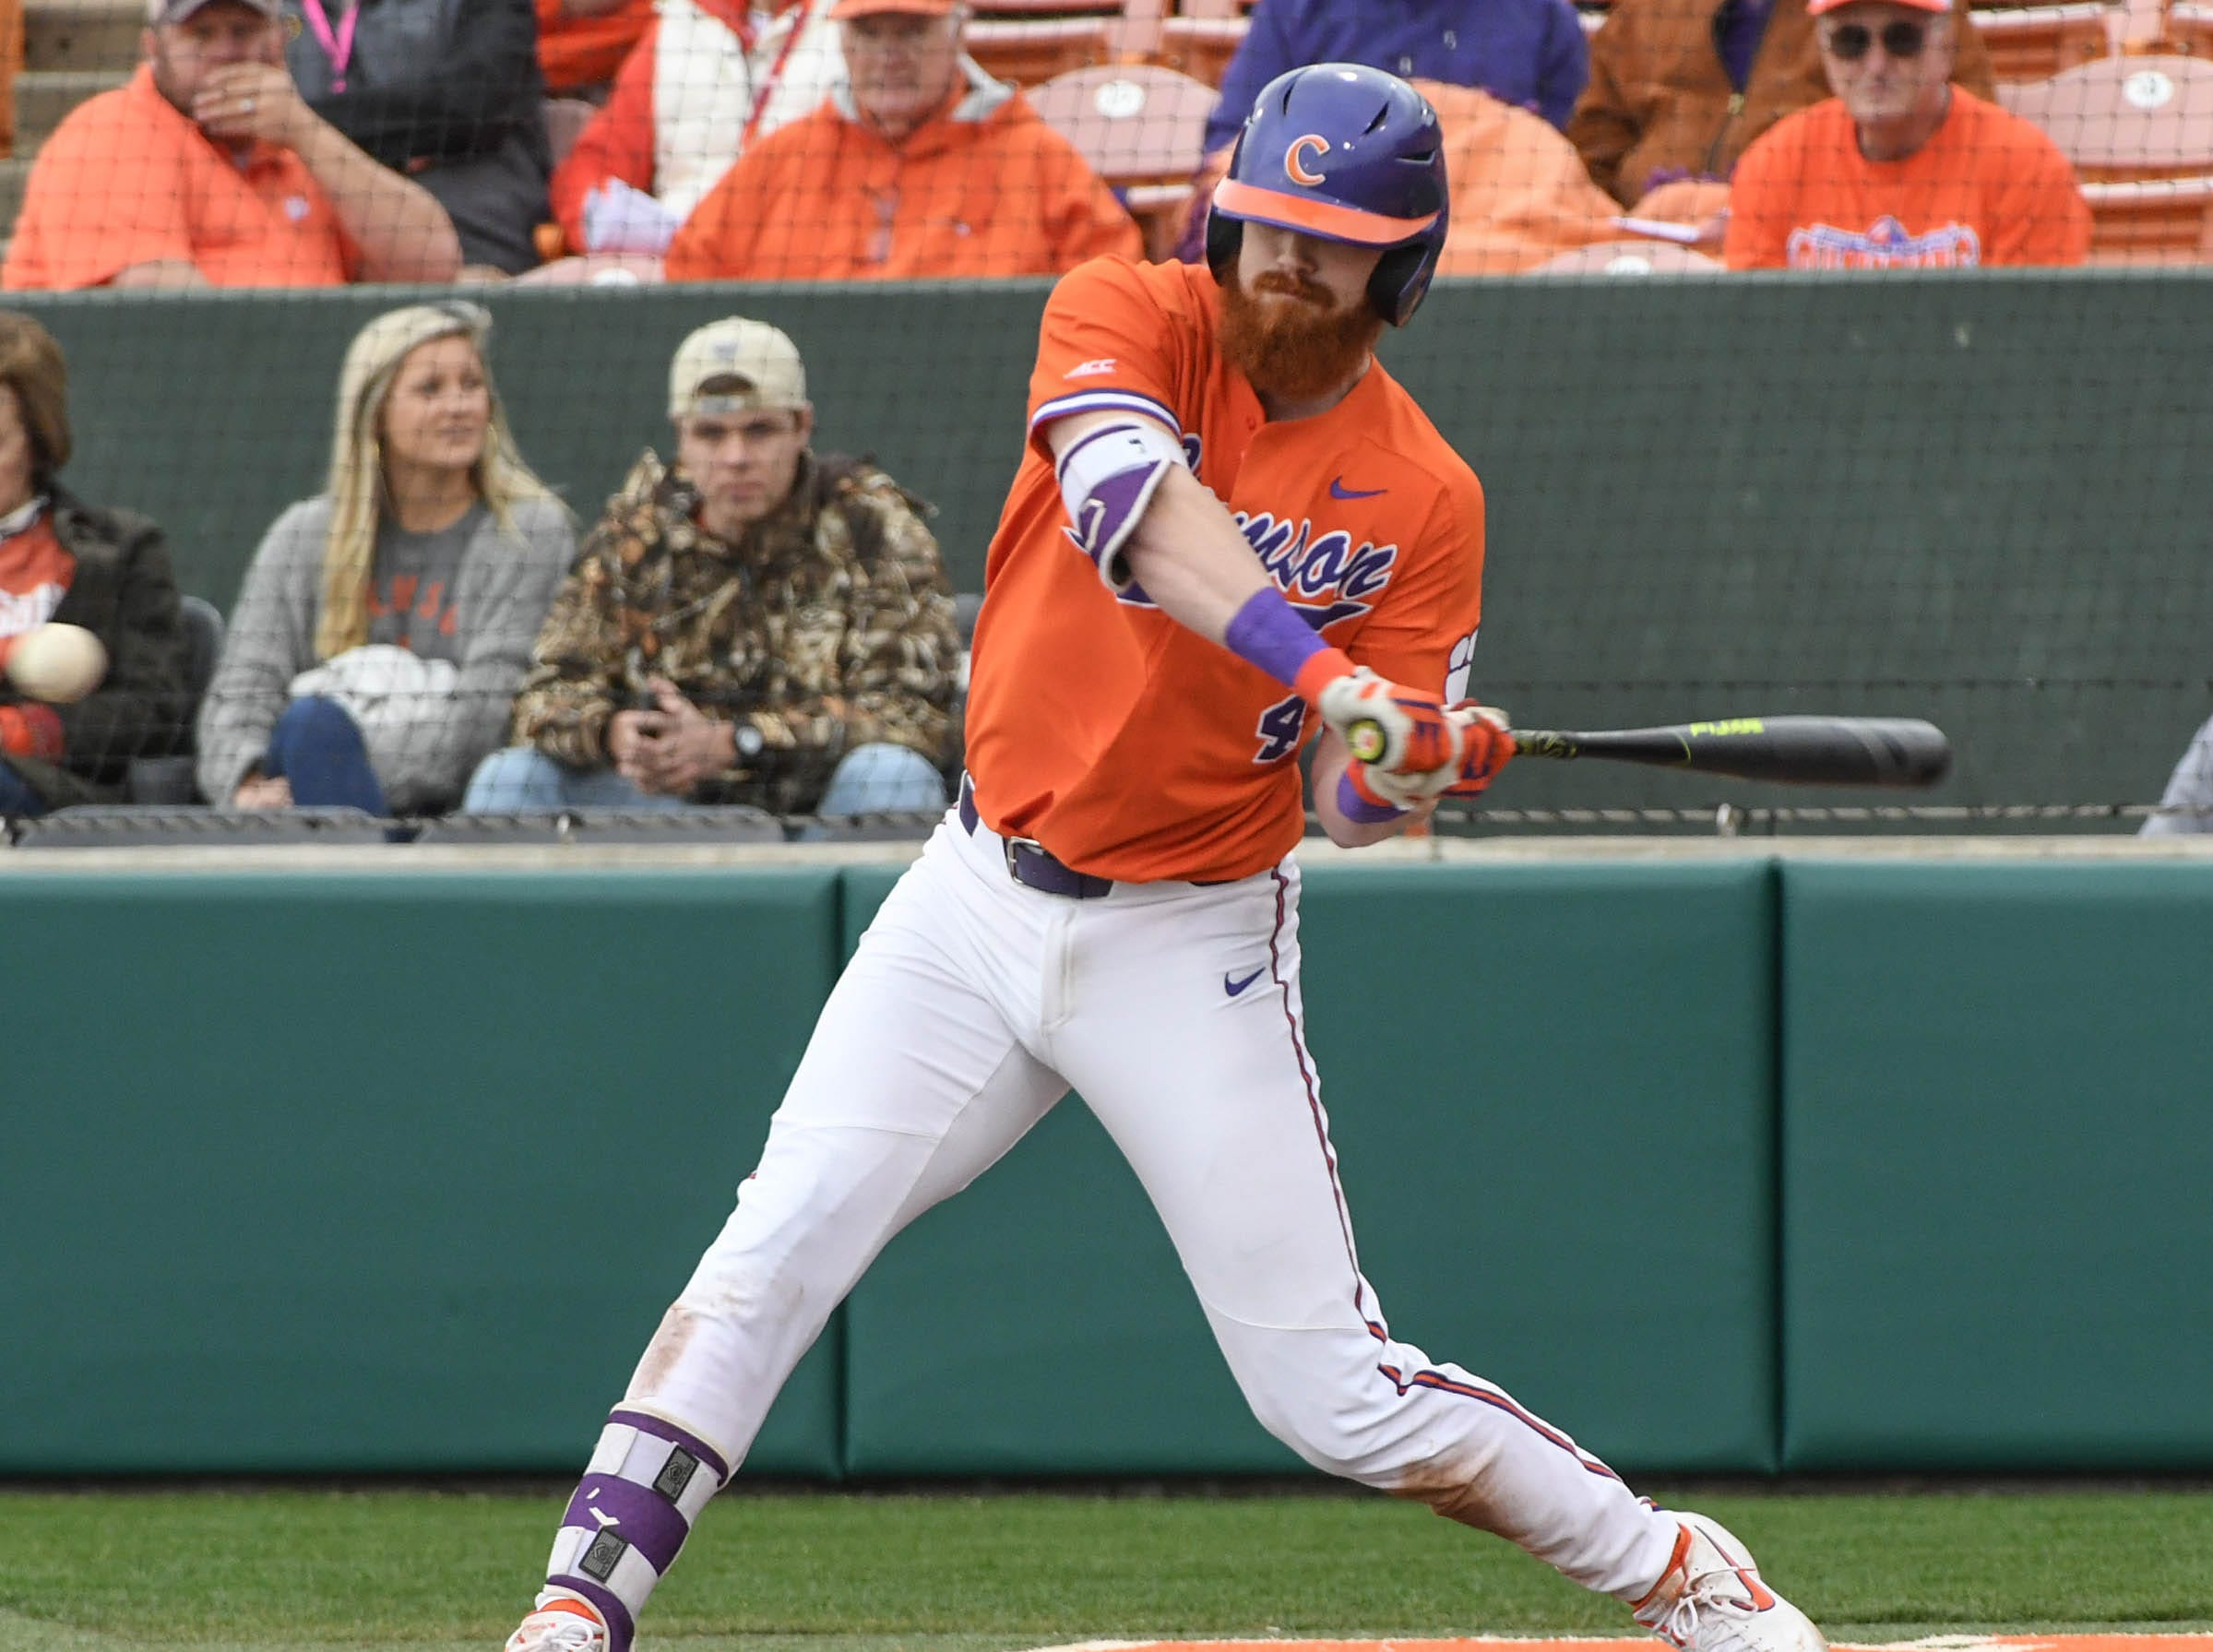 Clemson senior Grayson Byrd(4) plays against South Alabama during the bottom of the fourth inning at Doug Kingsmore Stadium in Clemson Friday, February 15, 2019.